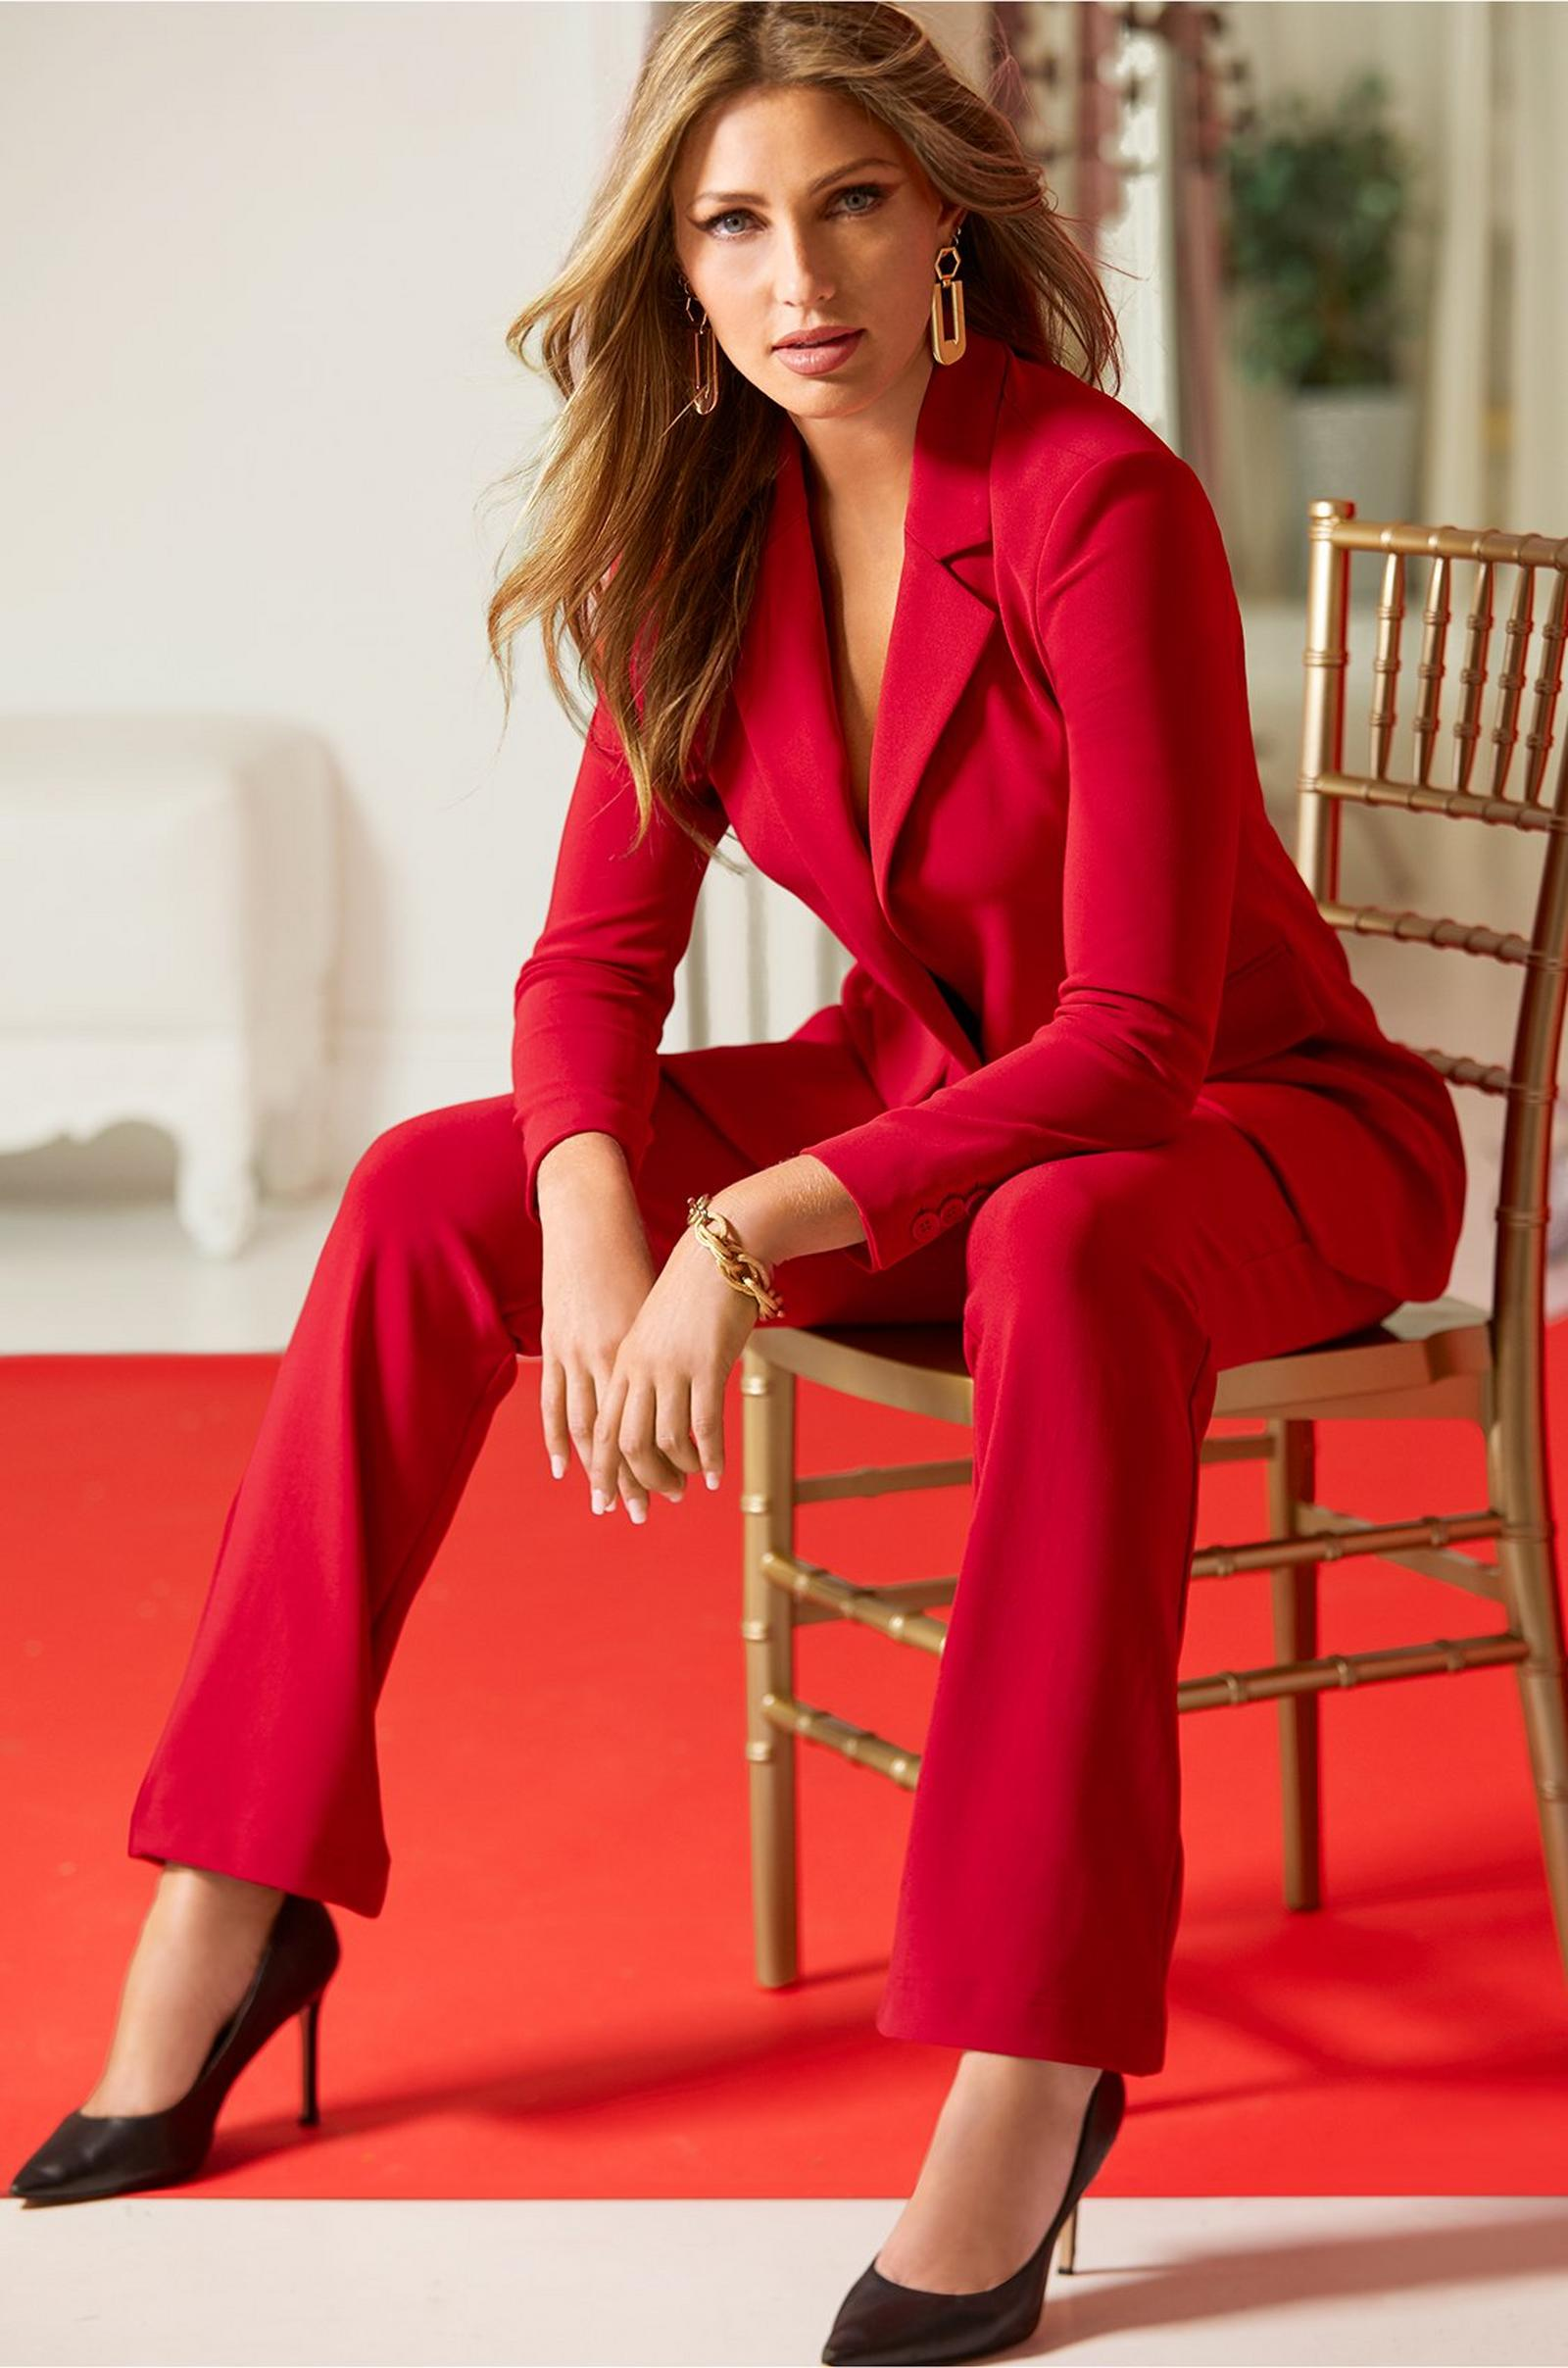 model sitting in a wood chair wearing a red blazer and red travel pants with black pumps.